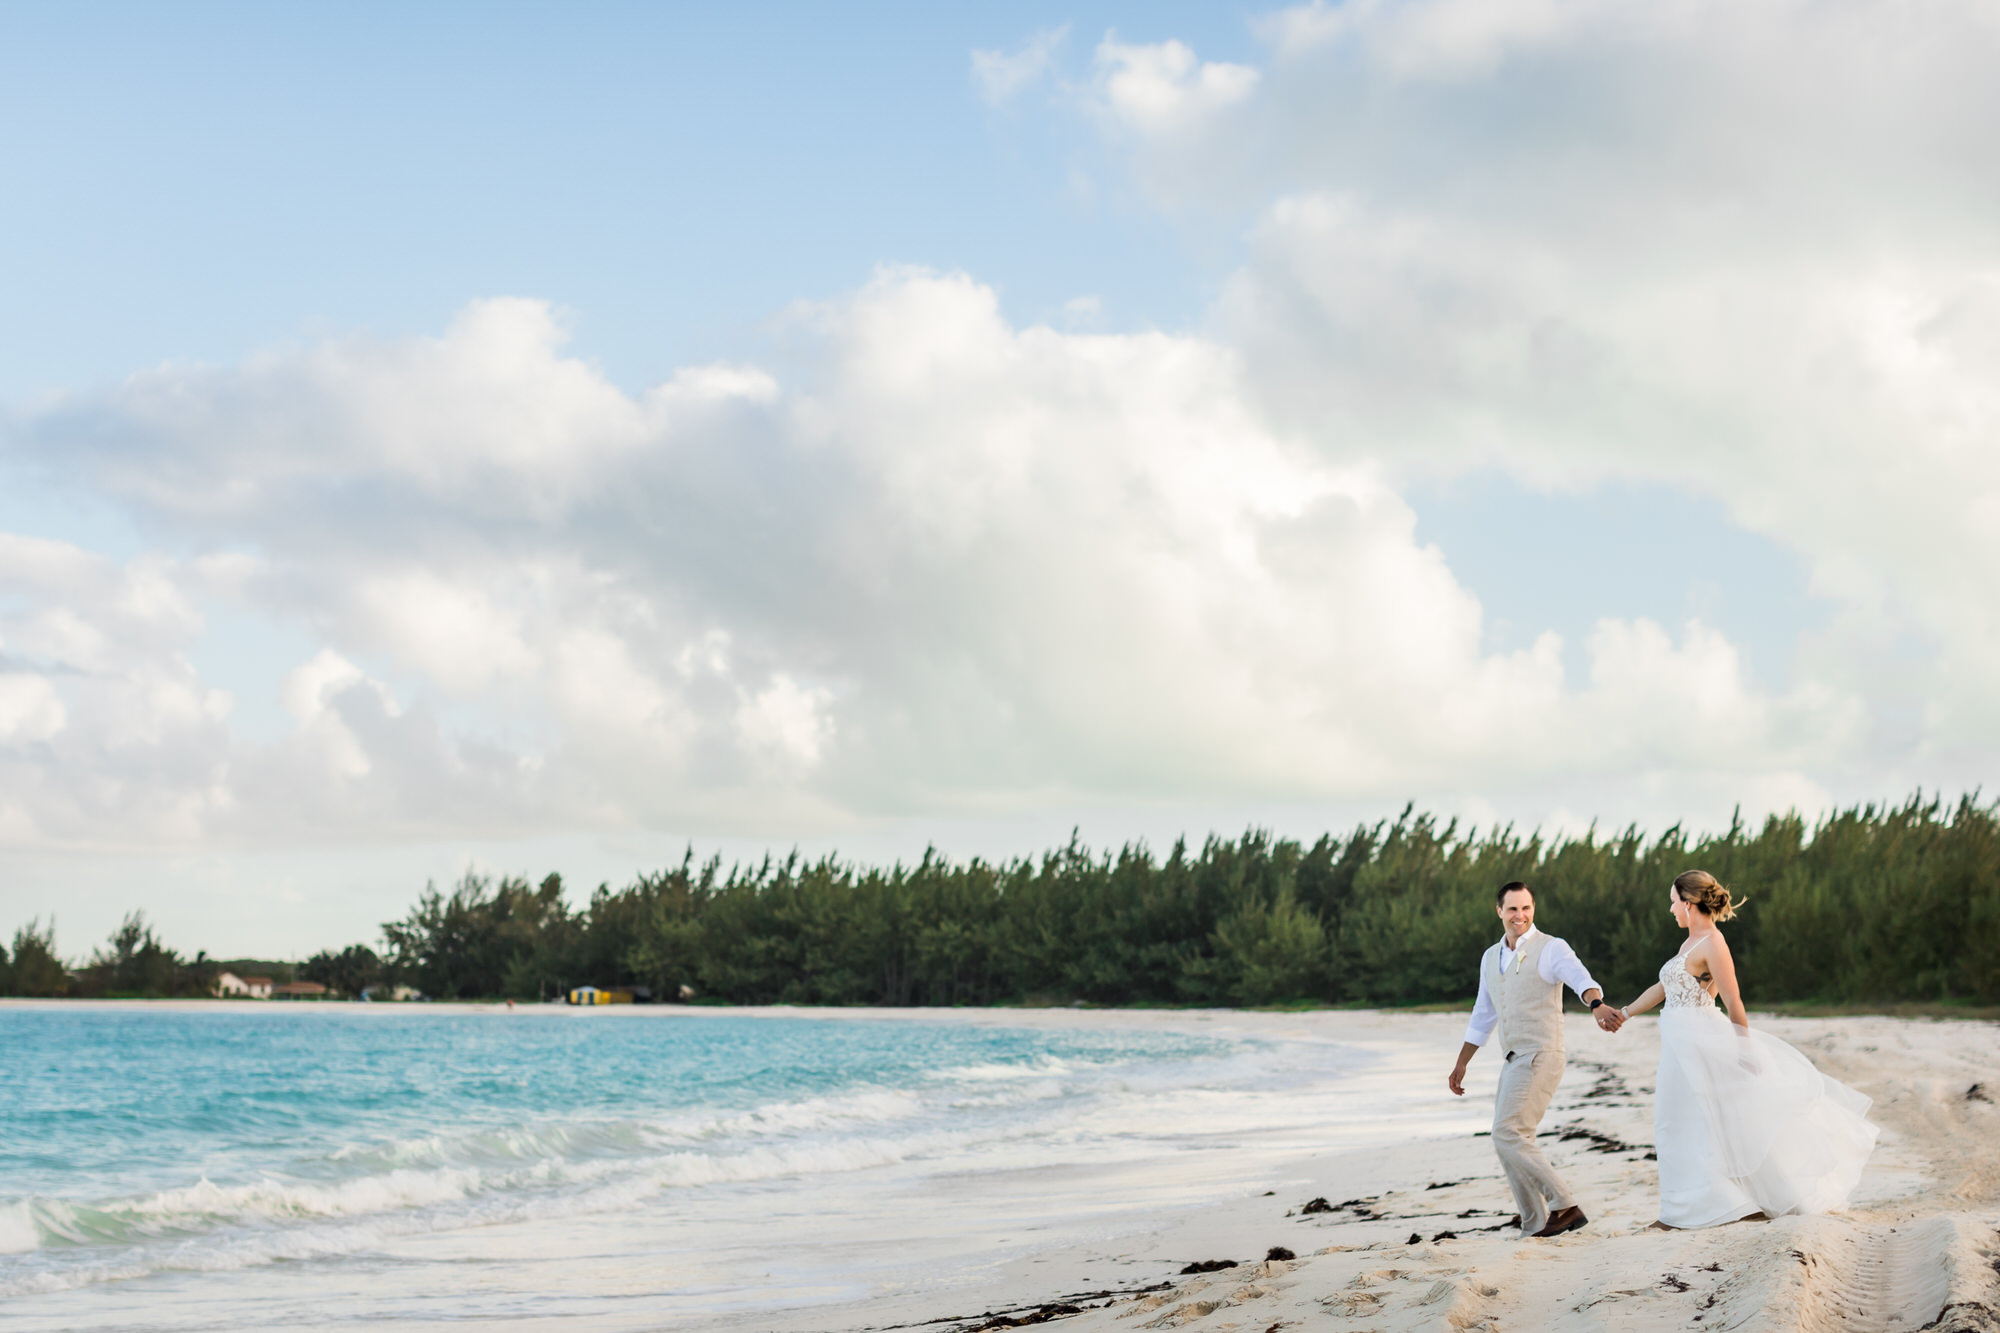 Newly married couple walking together after micro wedding in Bahamas